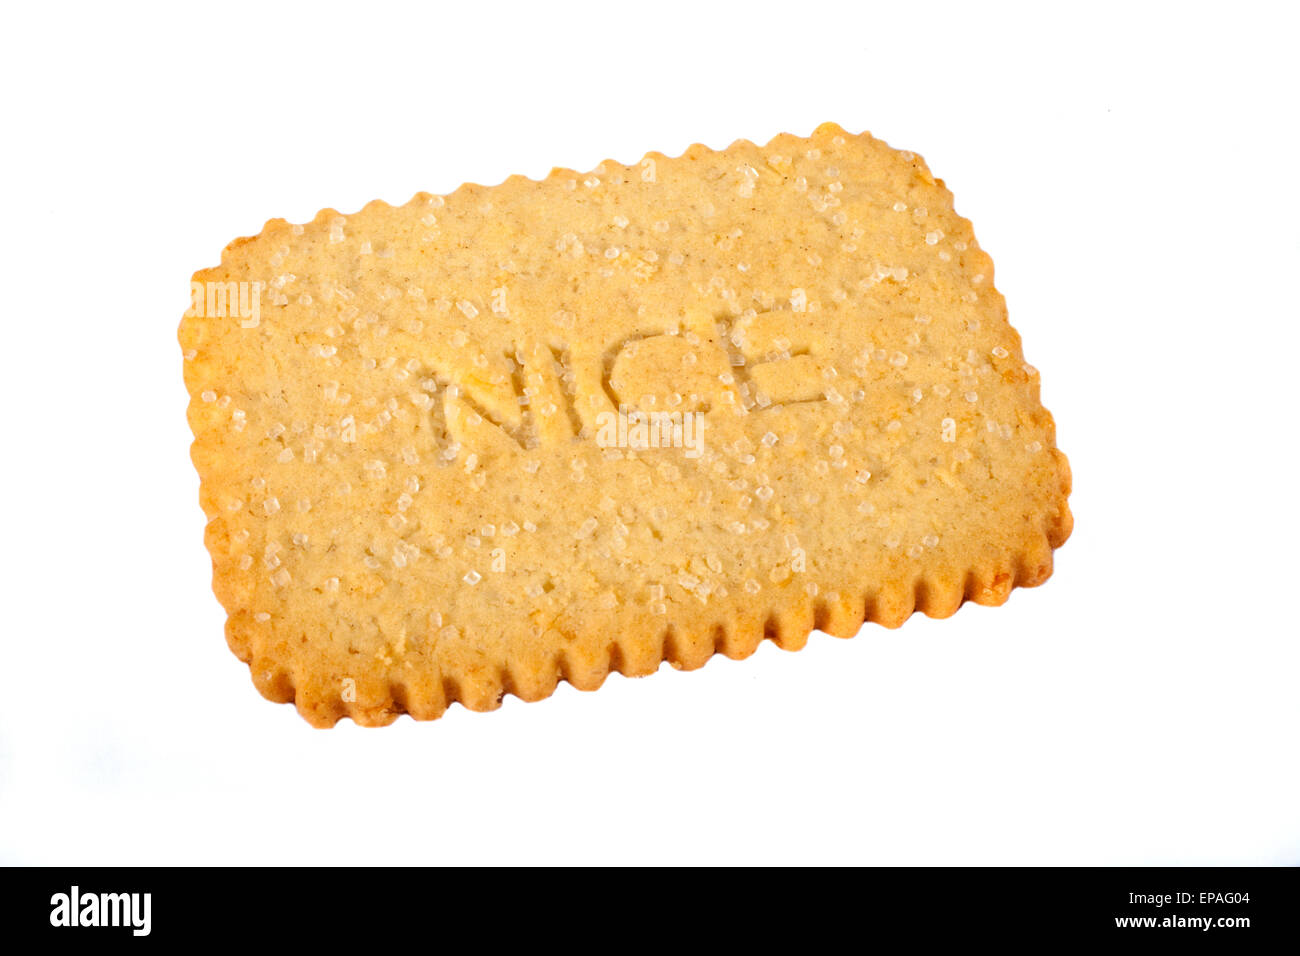 A Nice Biscuit over a plain white background. - Stock Image